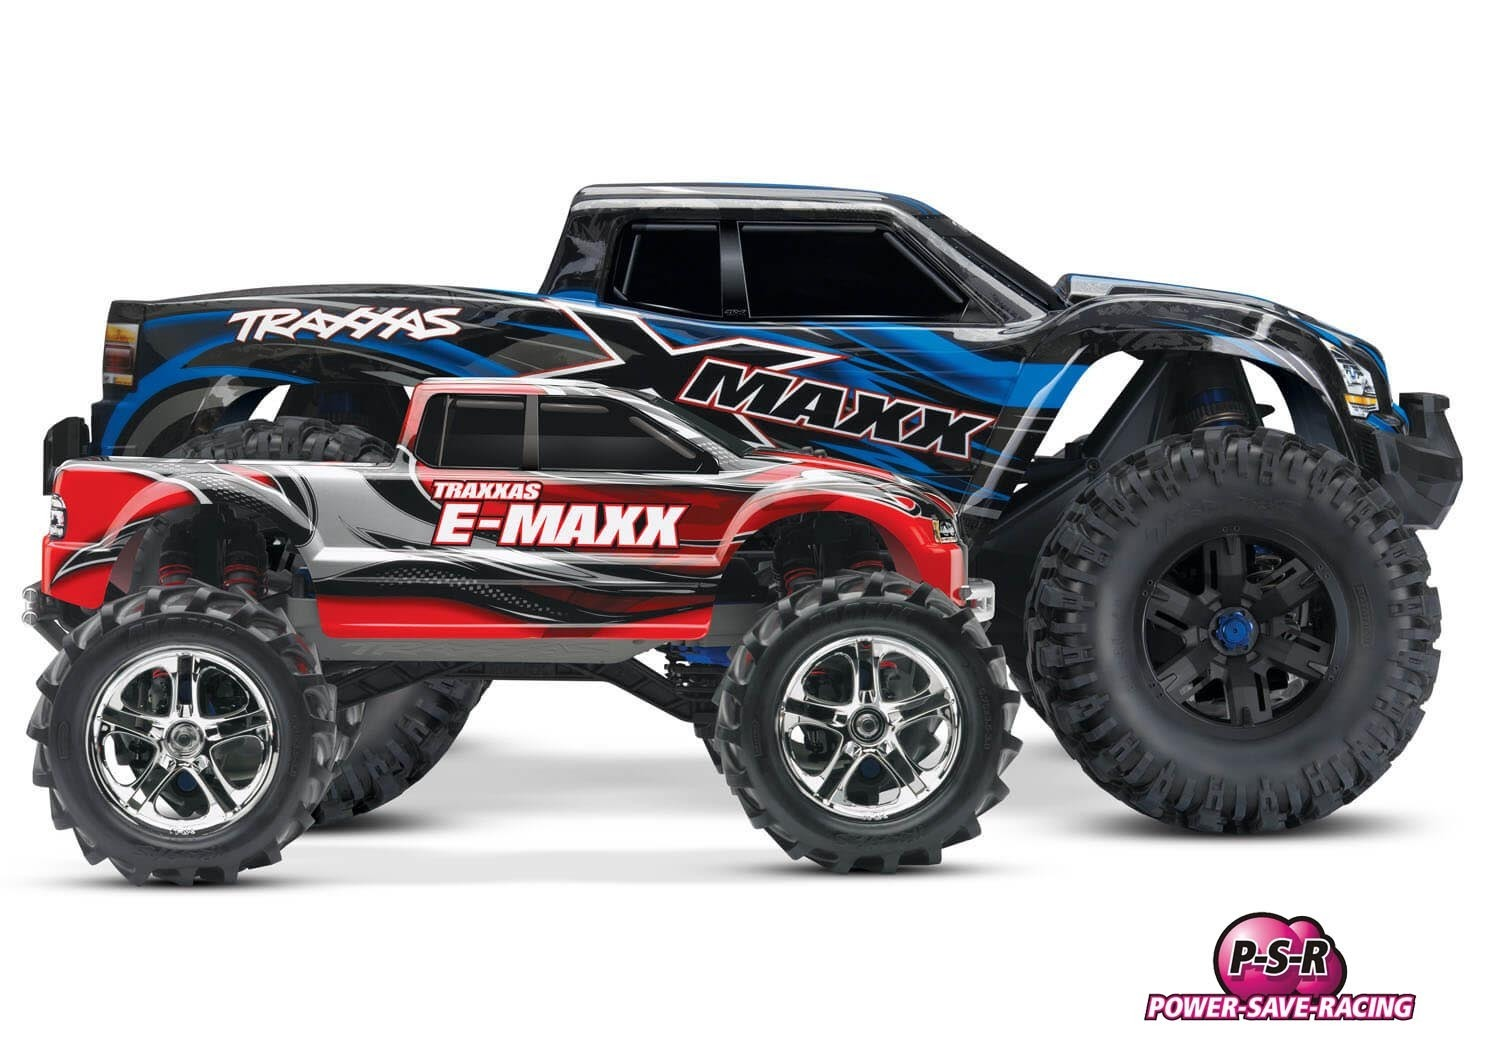 Rc Trail Truck For Sale together with RTR furthermore Rc Cars For Sale Best Nitro Gas Powered Petrol Electric Fast Drift Tamiya Traxxas Radio Controlled Cars moreover Rc Cars Primeros Pasos En La Aficion as well Hpi Savage X. on traxxas nitro radio controlled car and truck